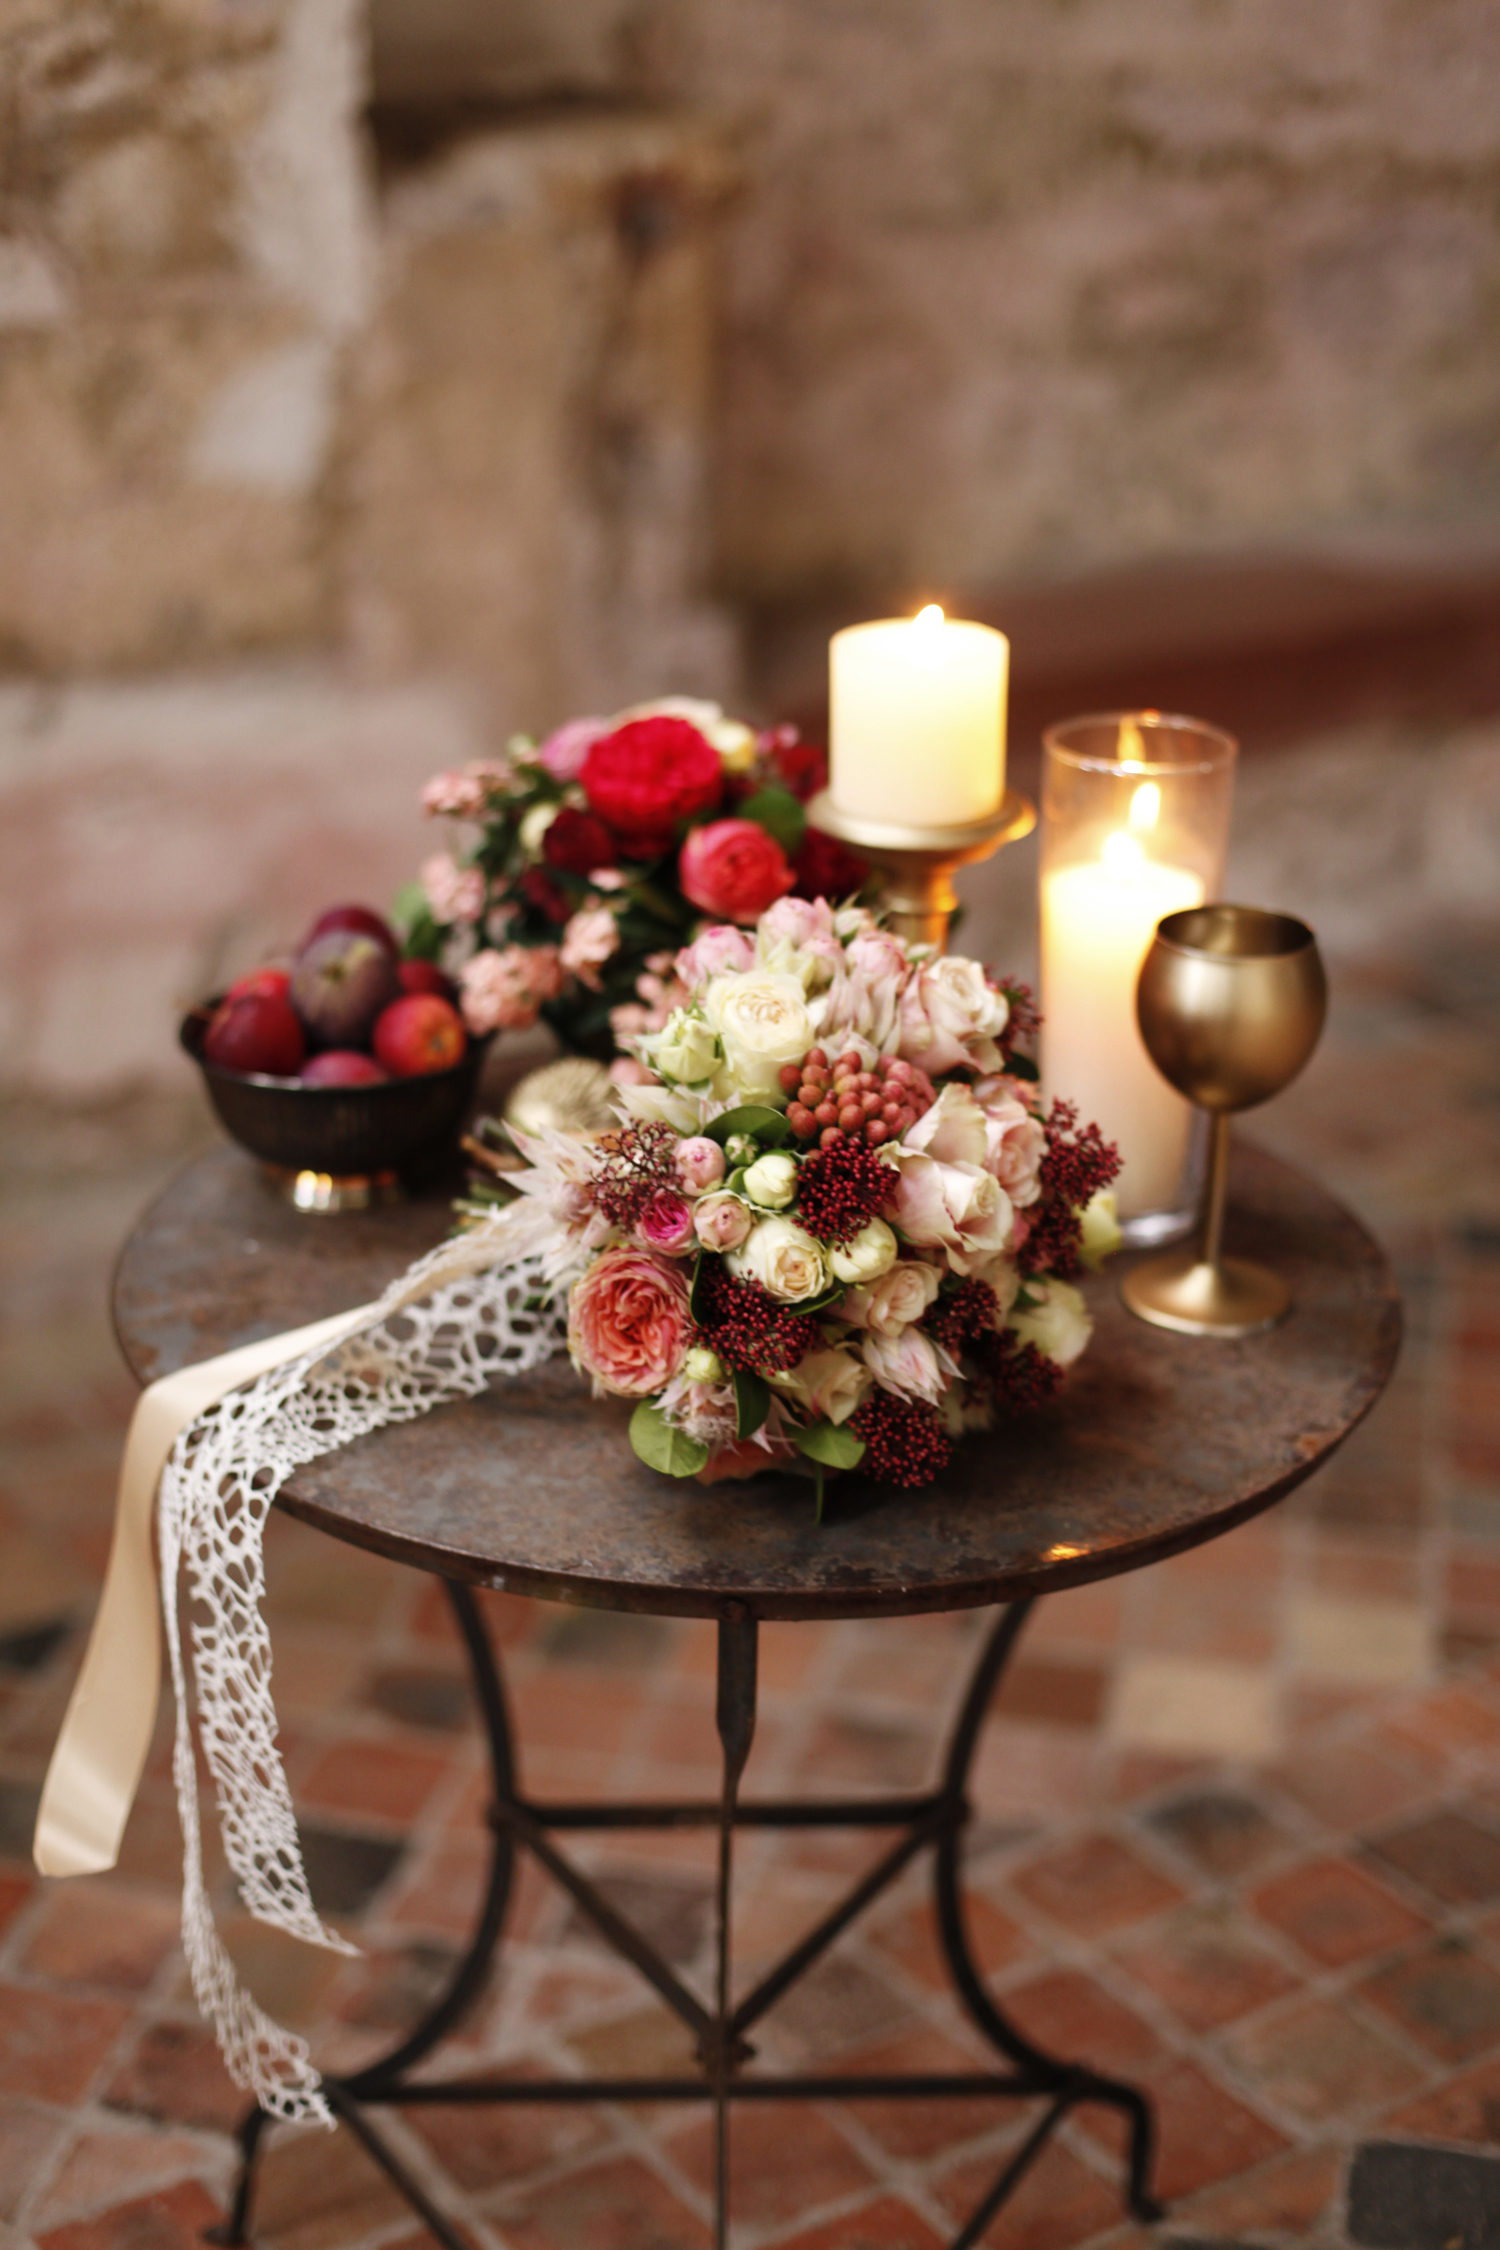 Wedding styling at Kloster Eberbach for style shoot by Flora Nova design Seattle